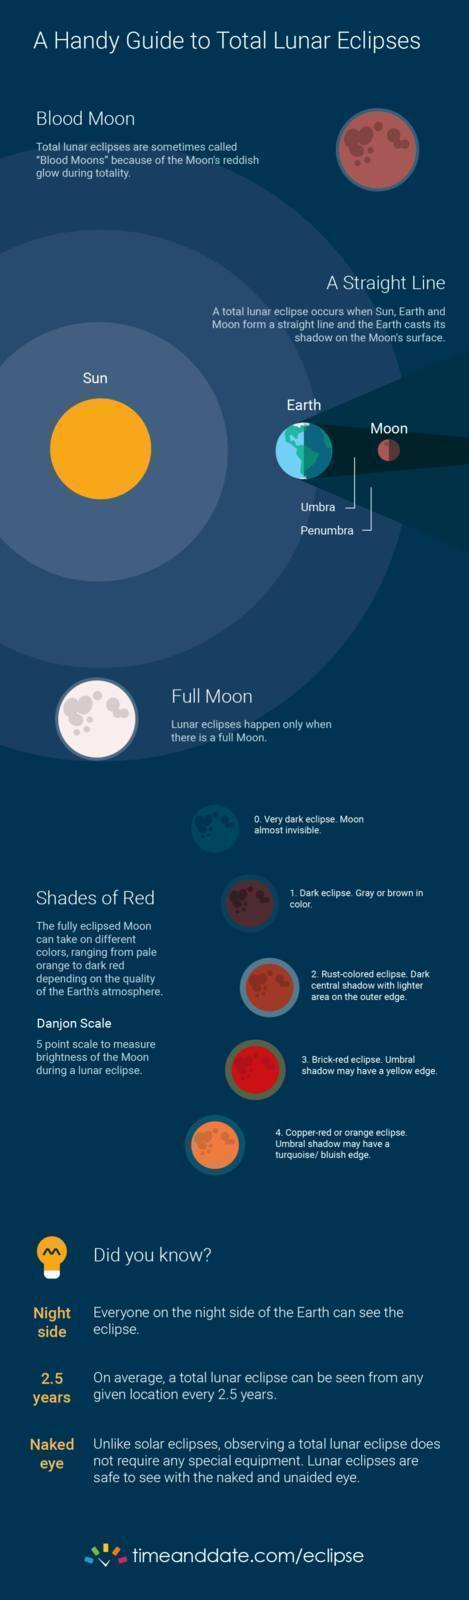 Look out for the longest total lunar eclipse of the 21st Century